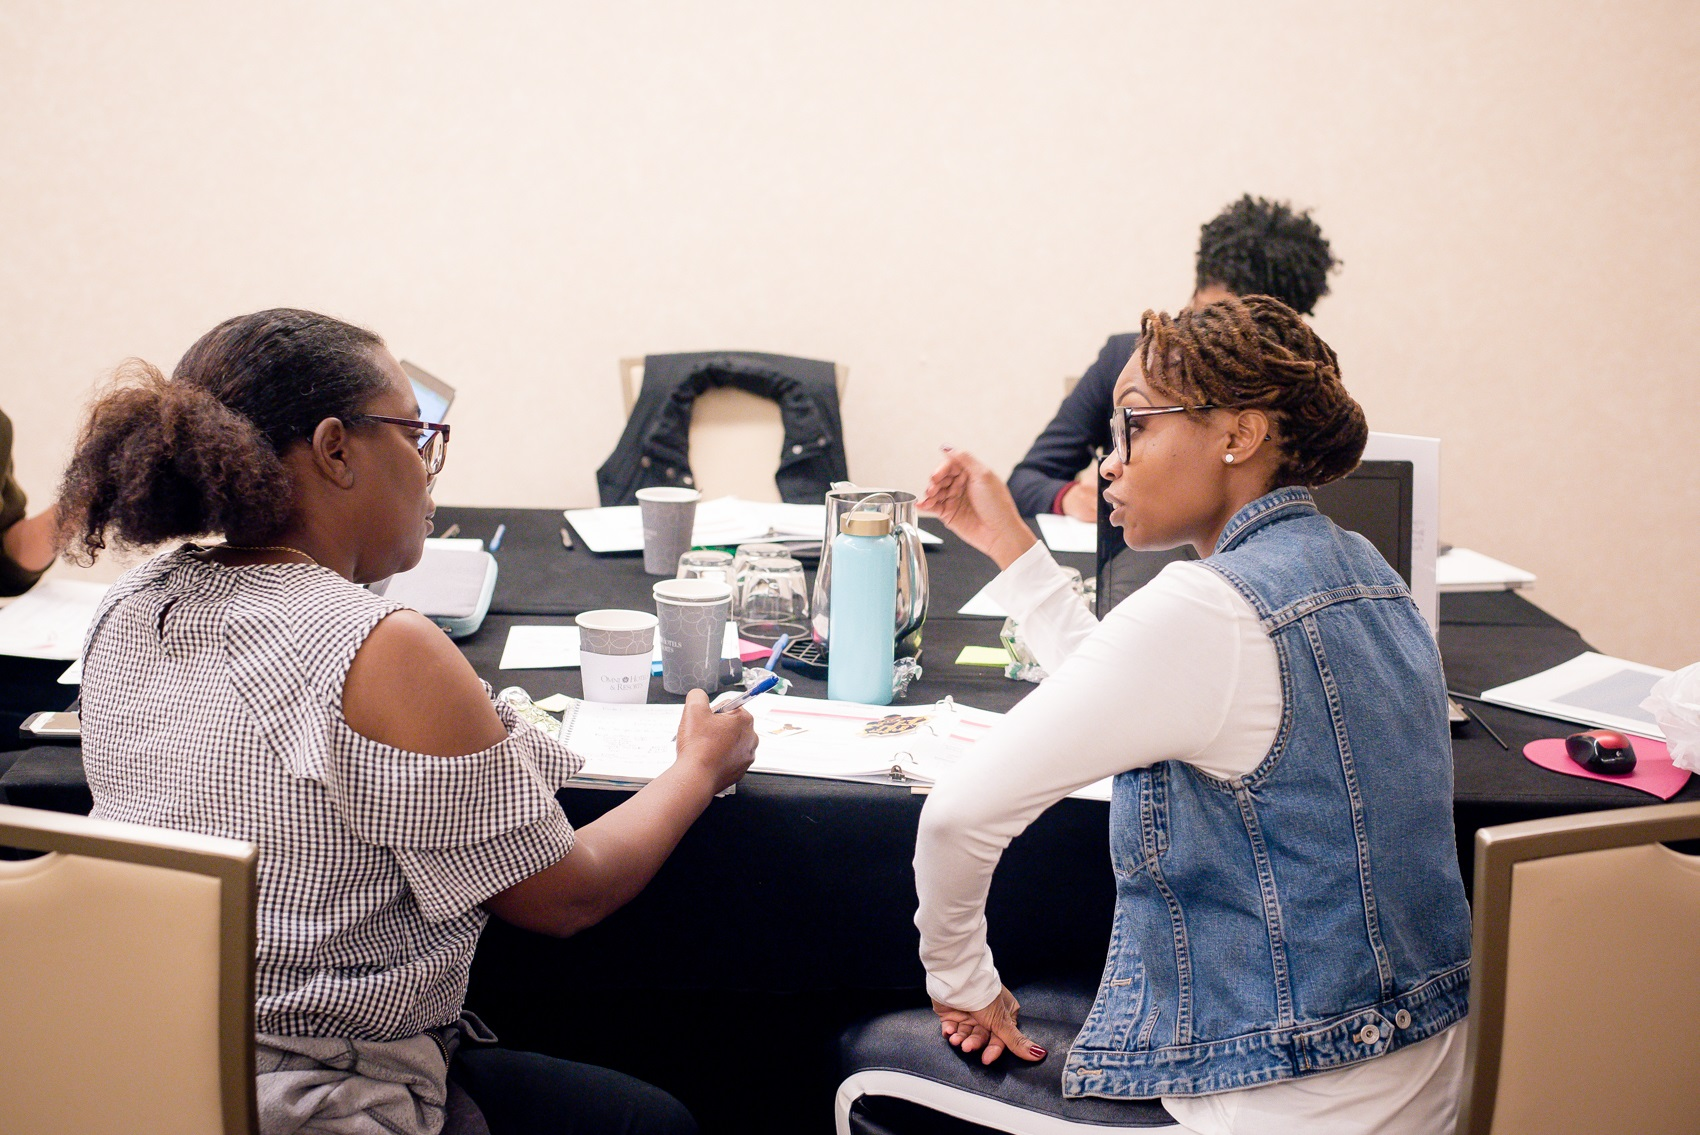 Black women are among the fastest-growing groups of entrepreneurs in the country.  Denver-based Sistahbiz Global Network provides coaching and financial help.